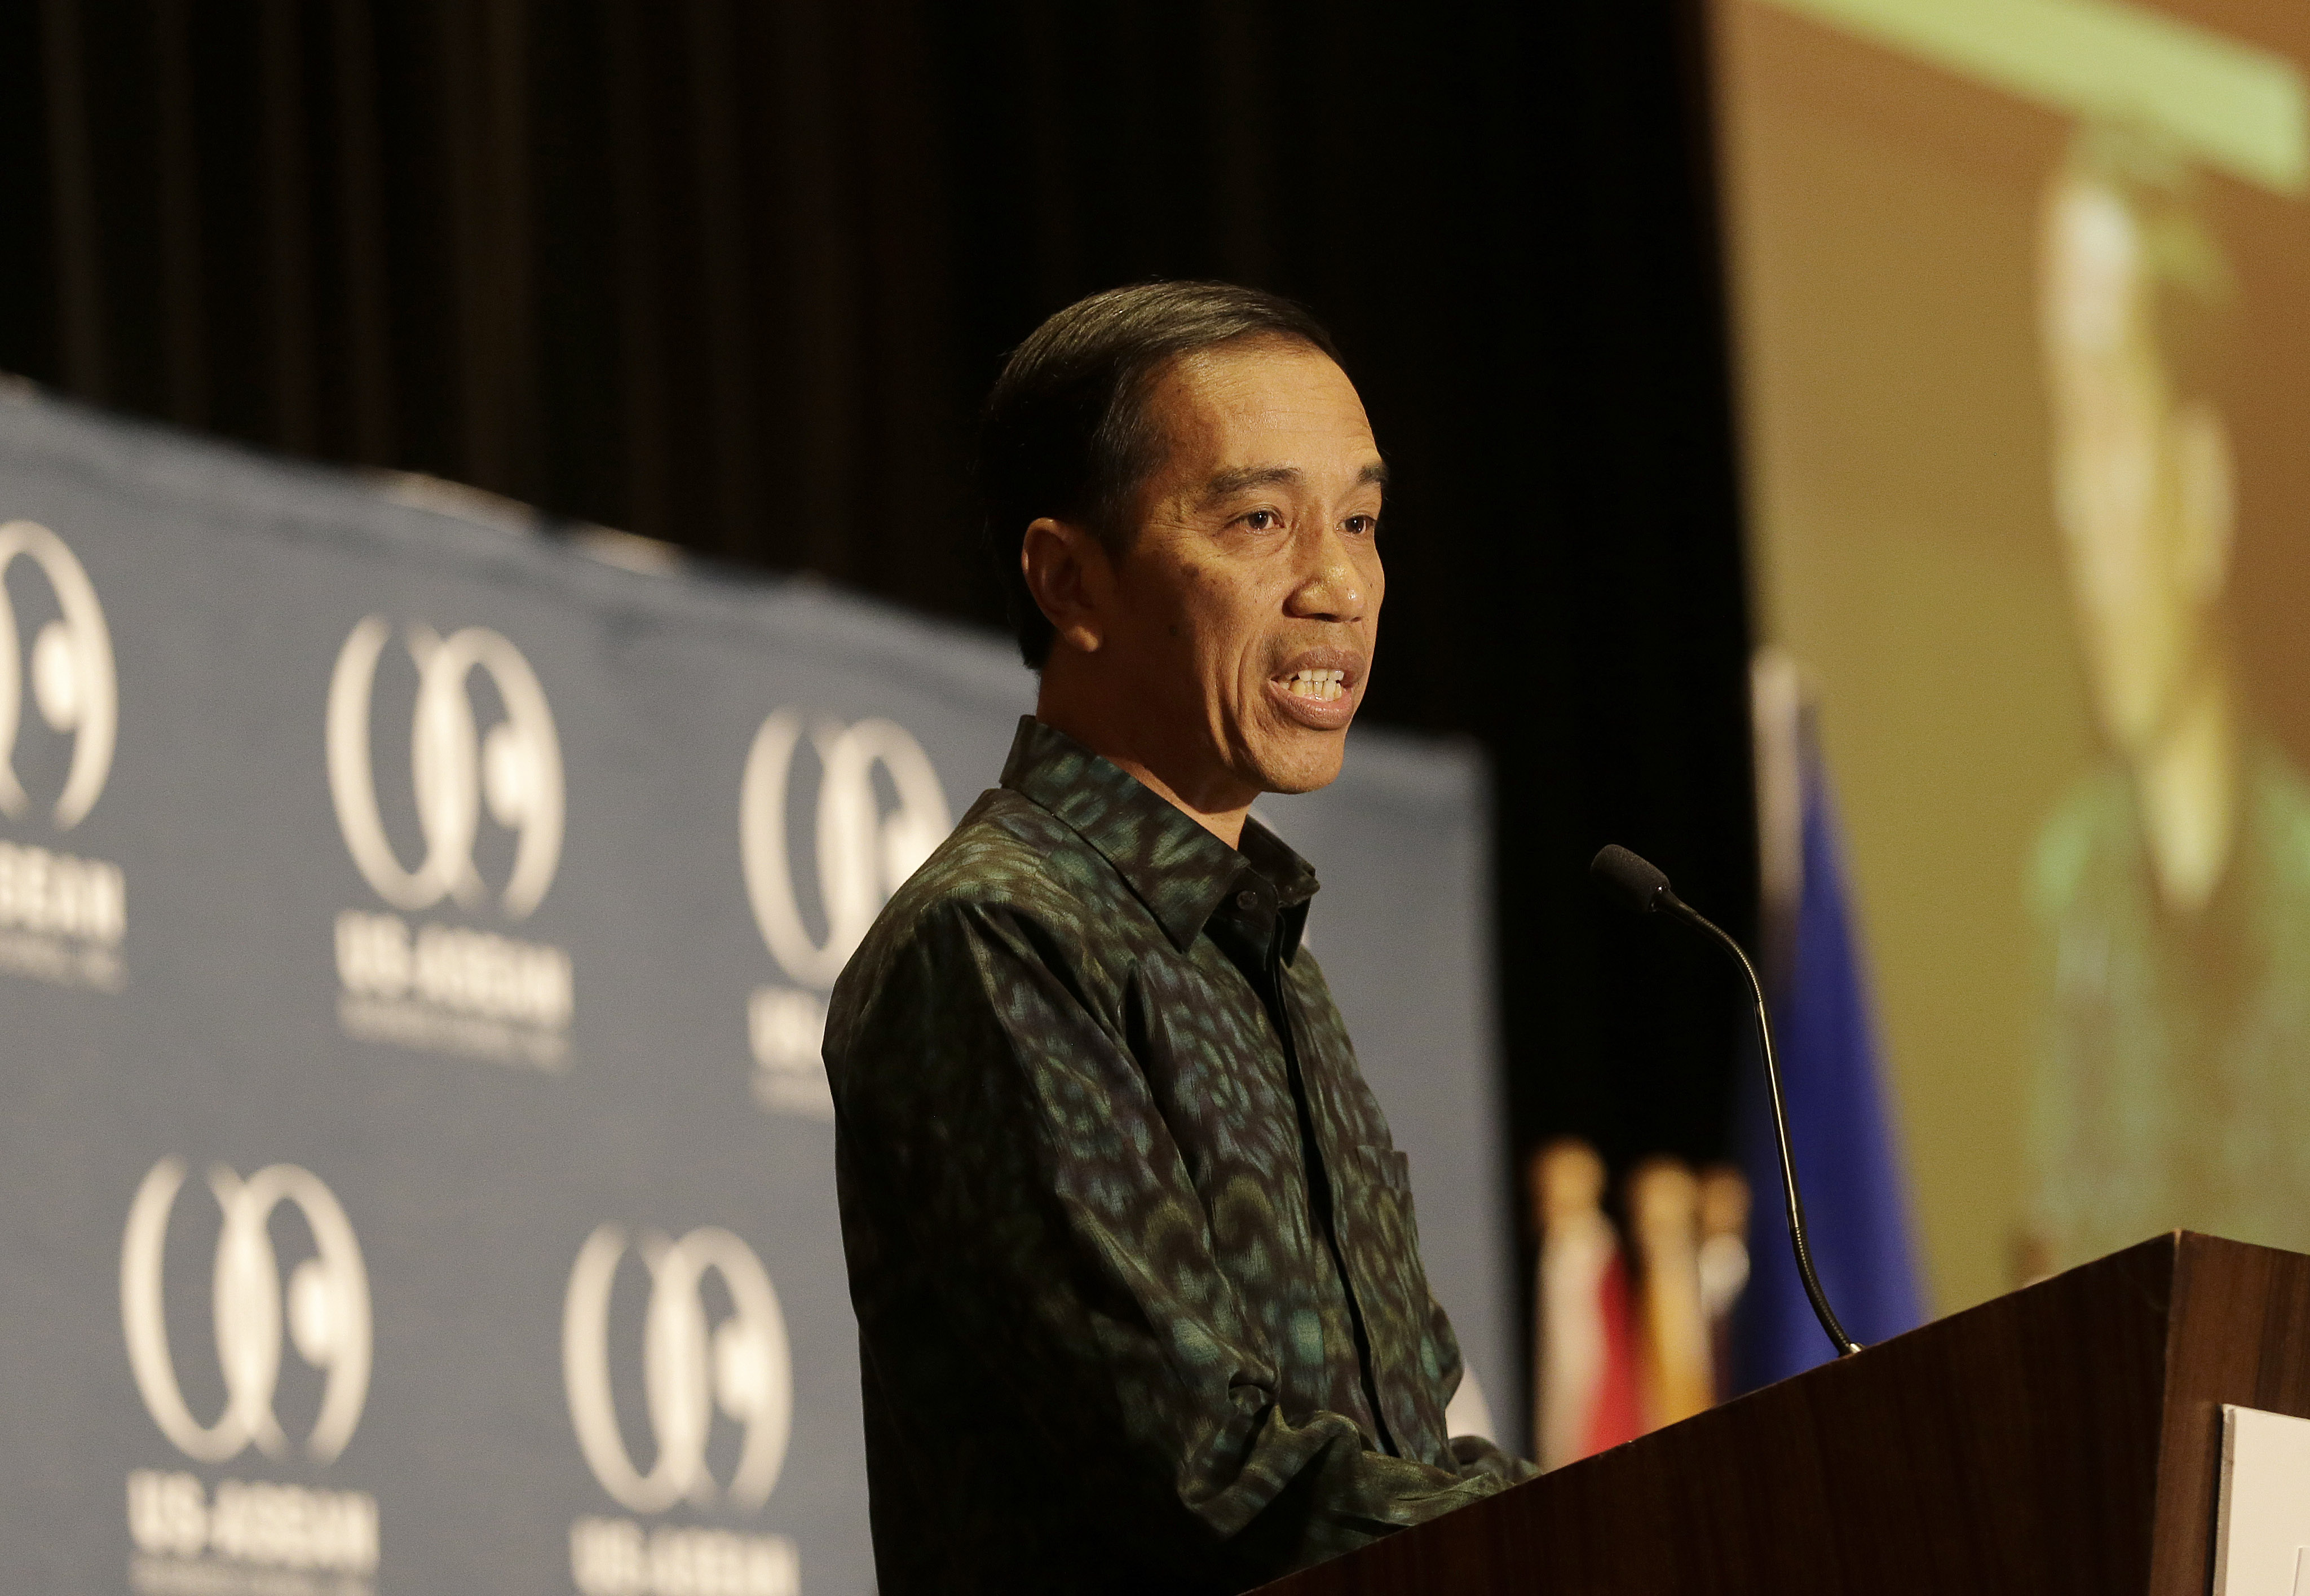 Indonesian President Joko Widodo gives the keynote address at a U.S.-ASEAN Business Council event in San Francisco on Feb. 17, 2016